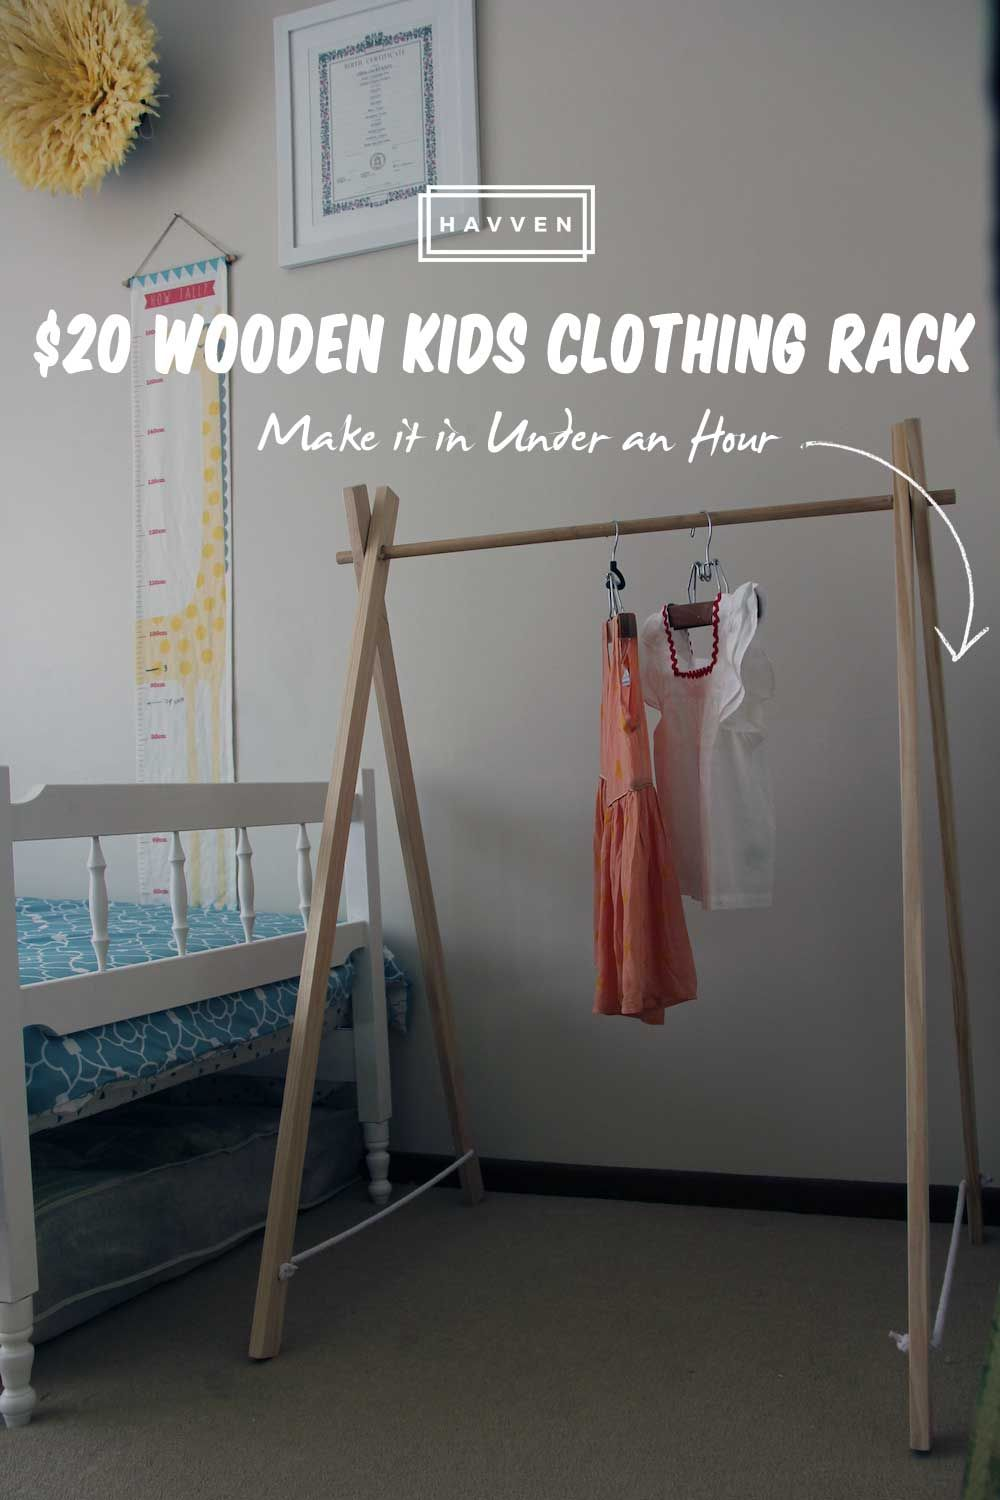 DIY $20 Wooden Kids Clothing Rack Make in Under an Hour